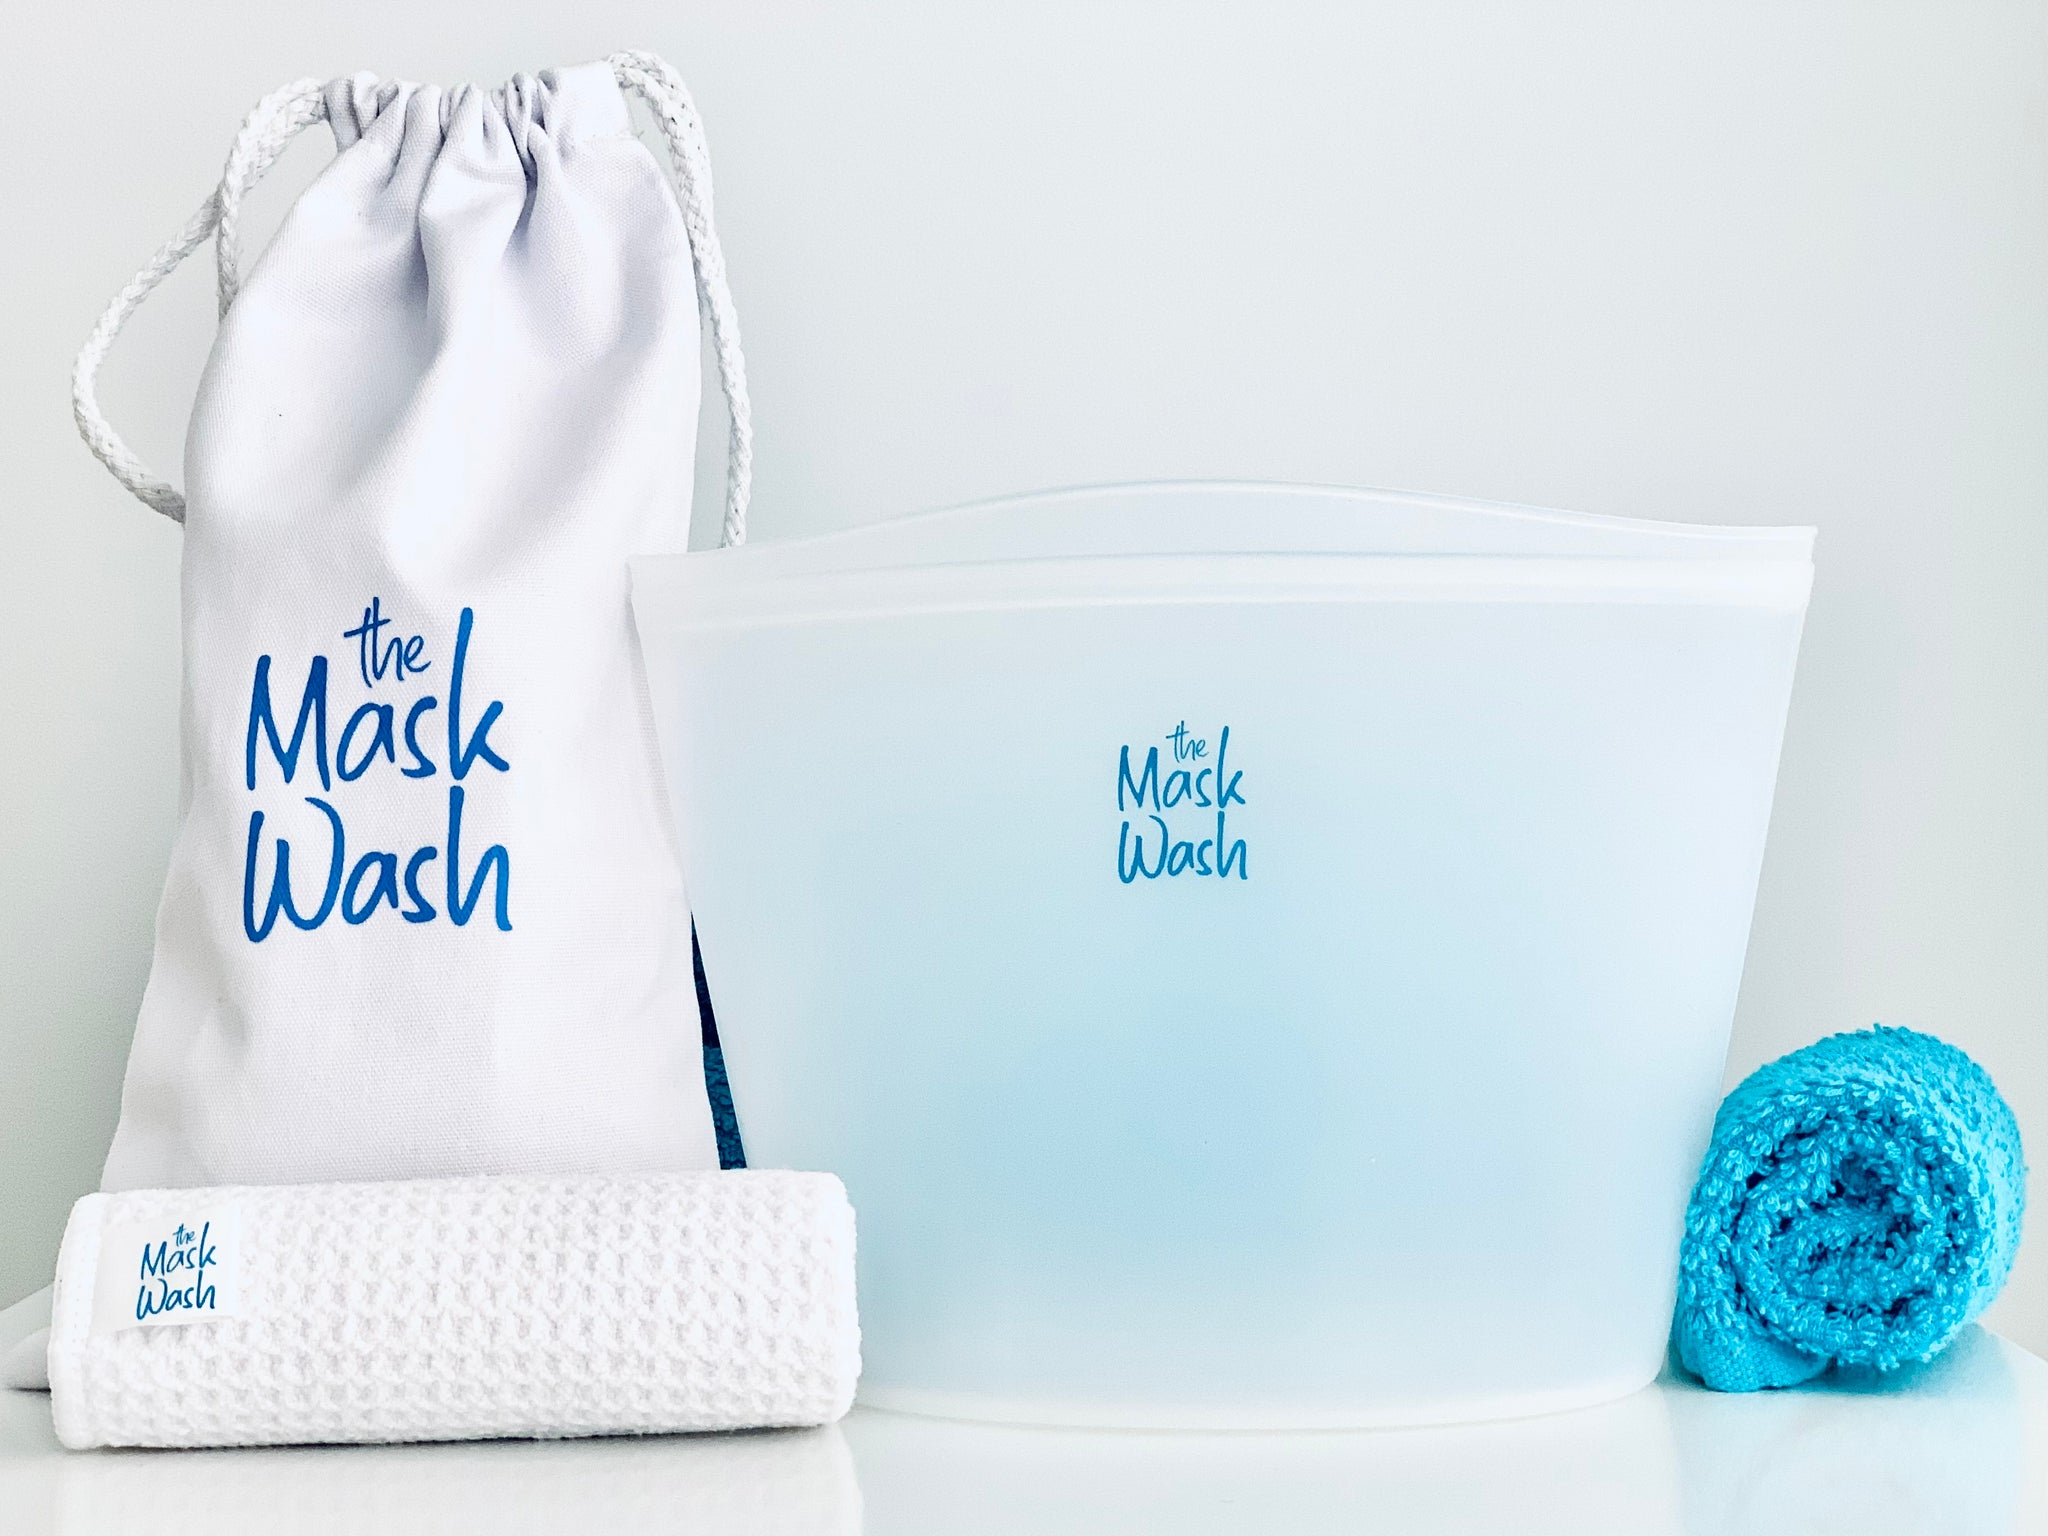 silicone wash bag for your fabric mask, ultra absorbent drying towel, 100% cotton drawstring storage and travel bag